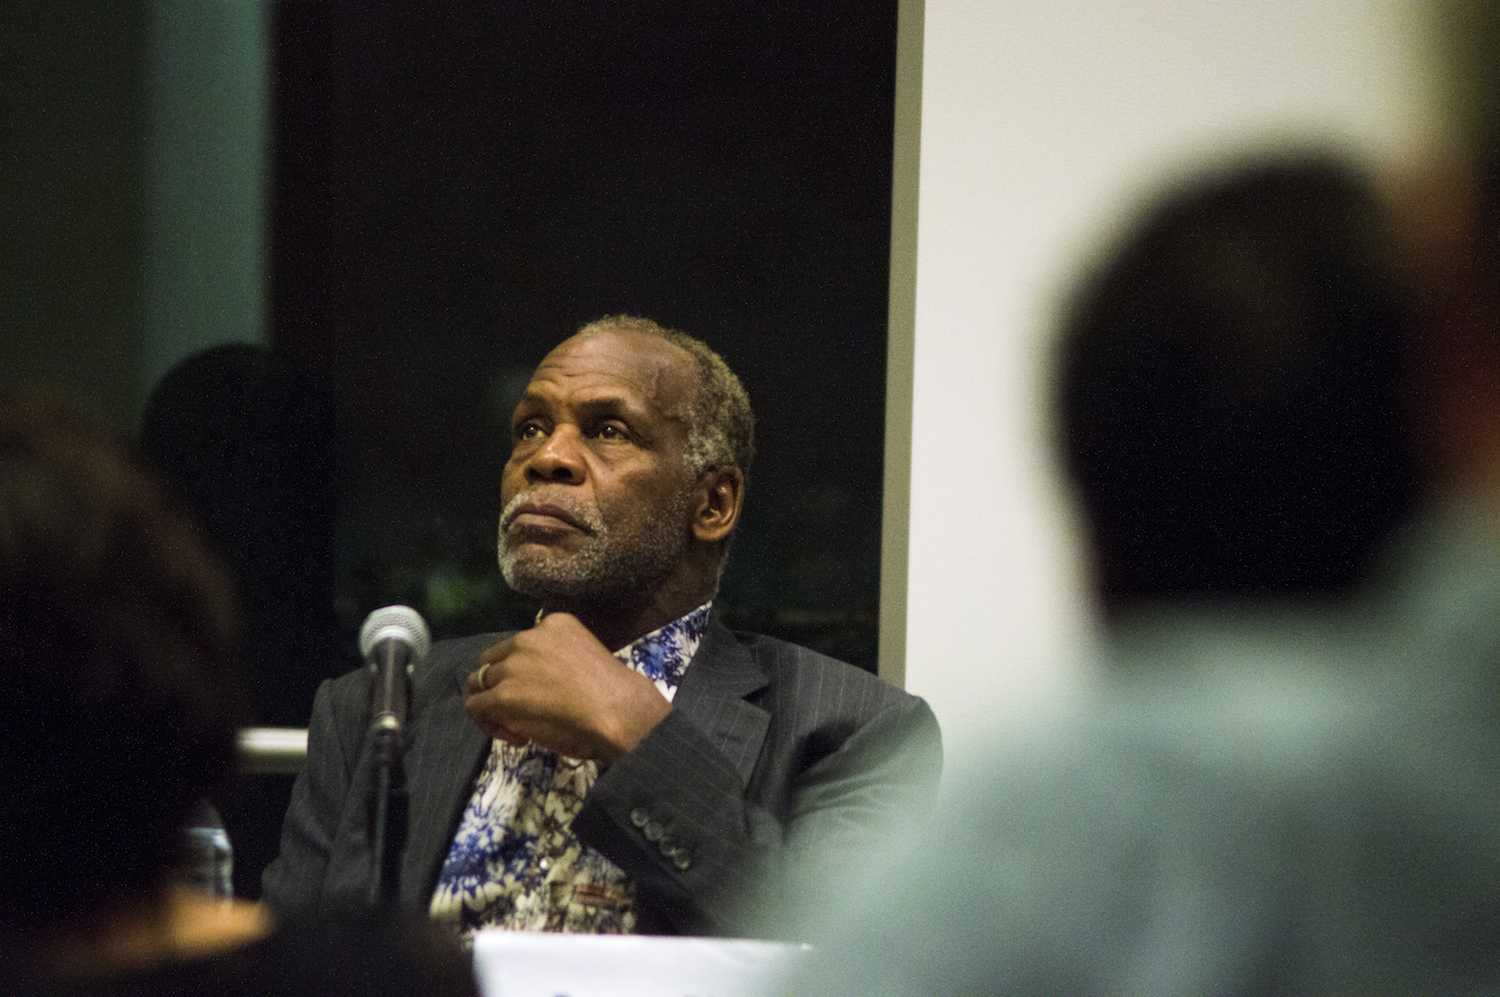 """Danny Glover during the panel following a screening of """"Tula: The Revolt."""" (Ian McKenna/The Observer)"""